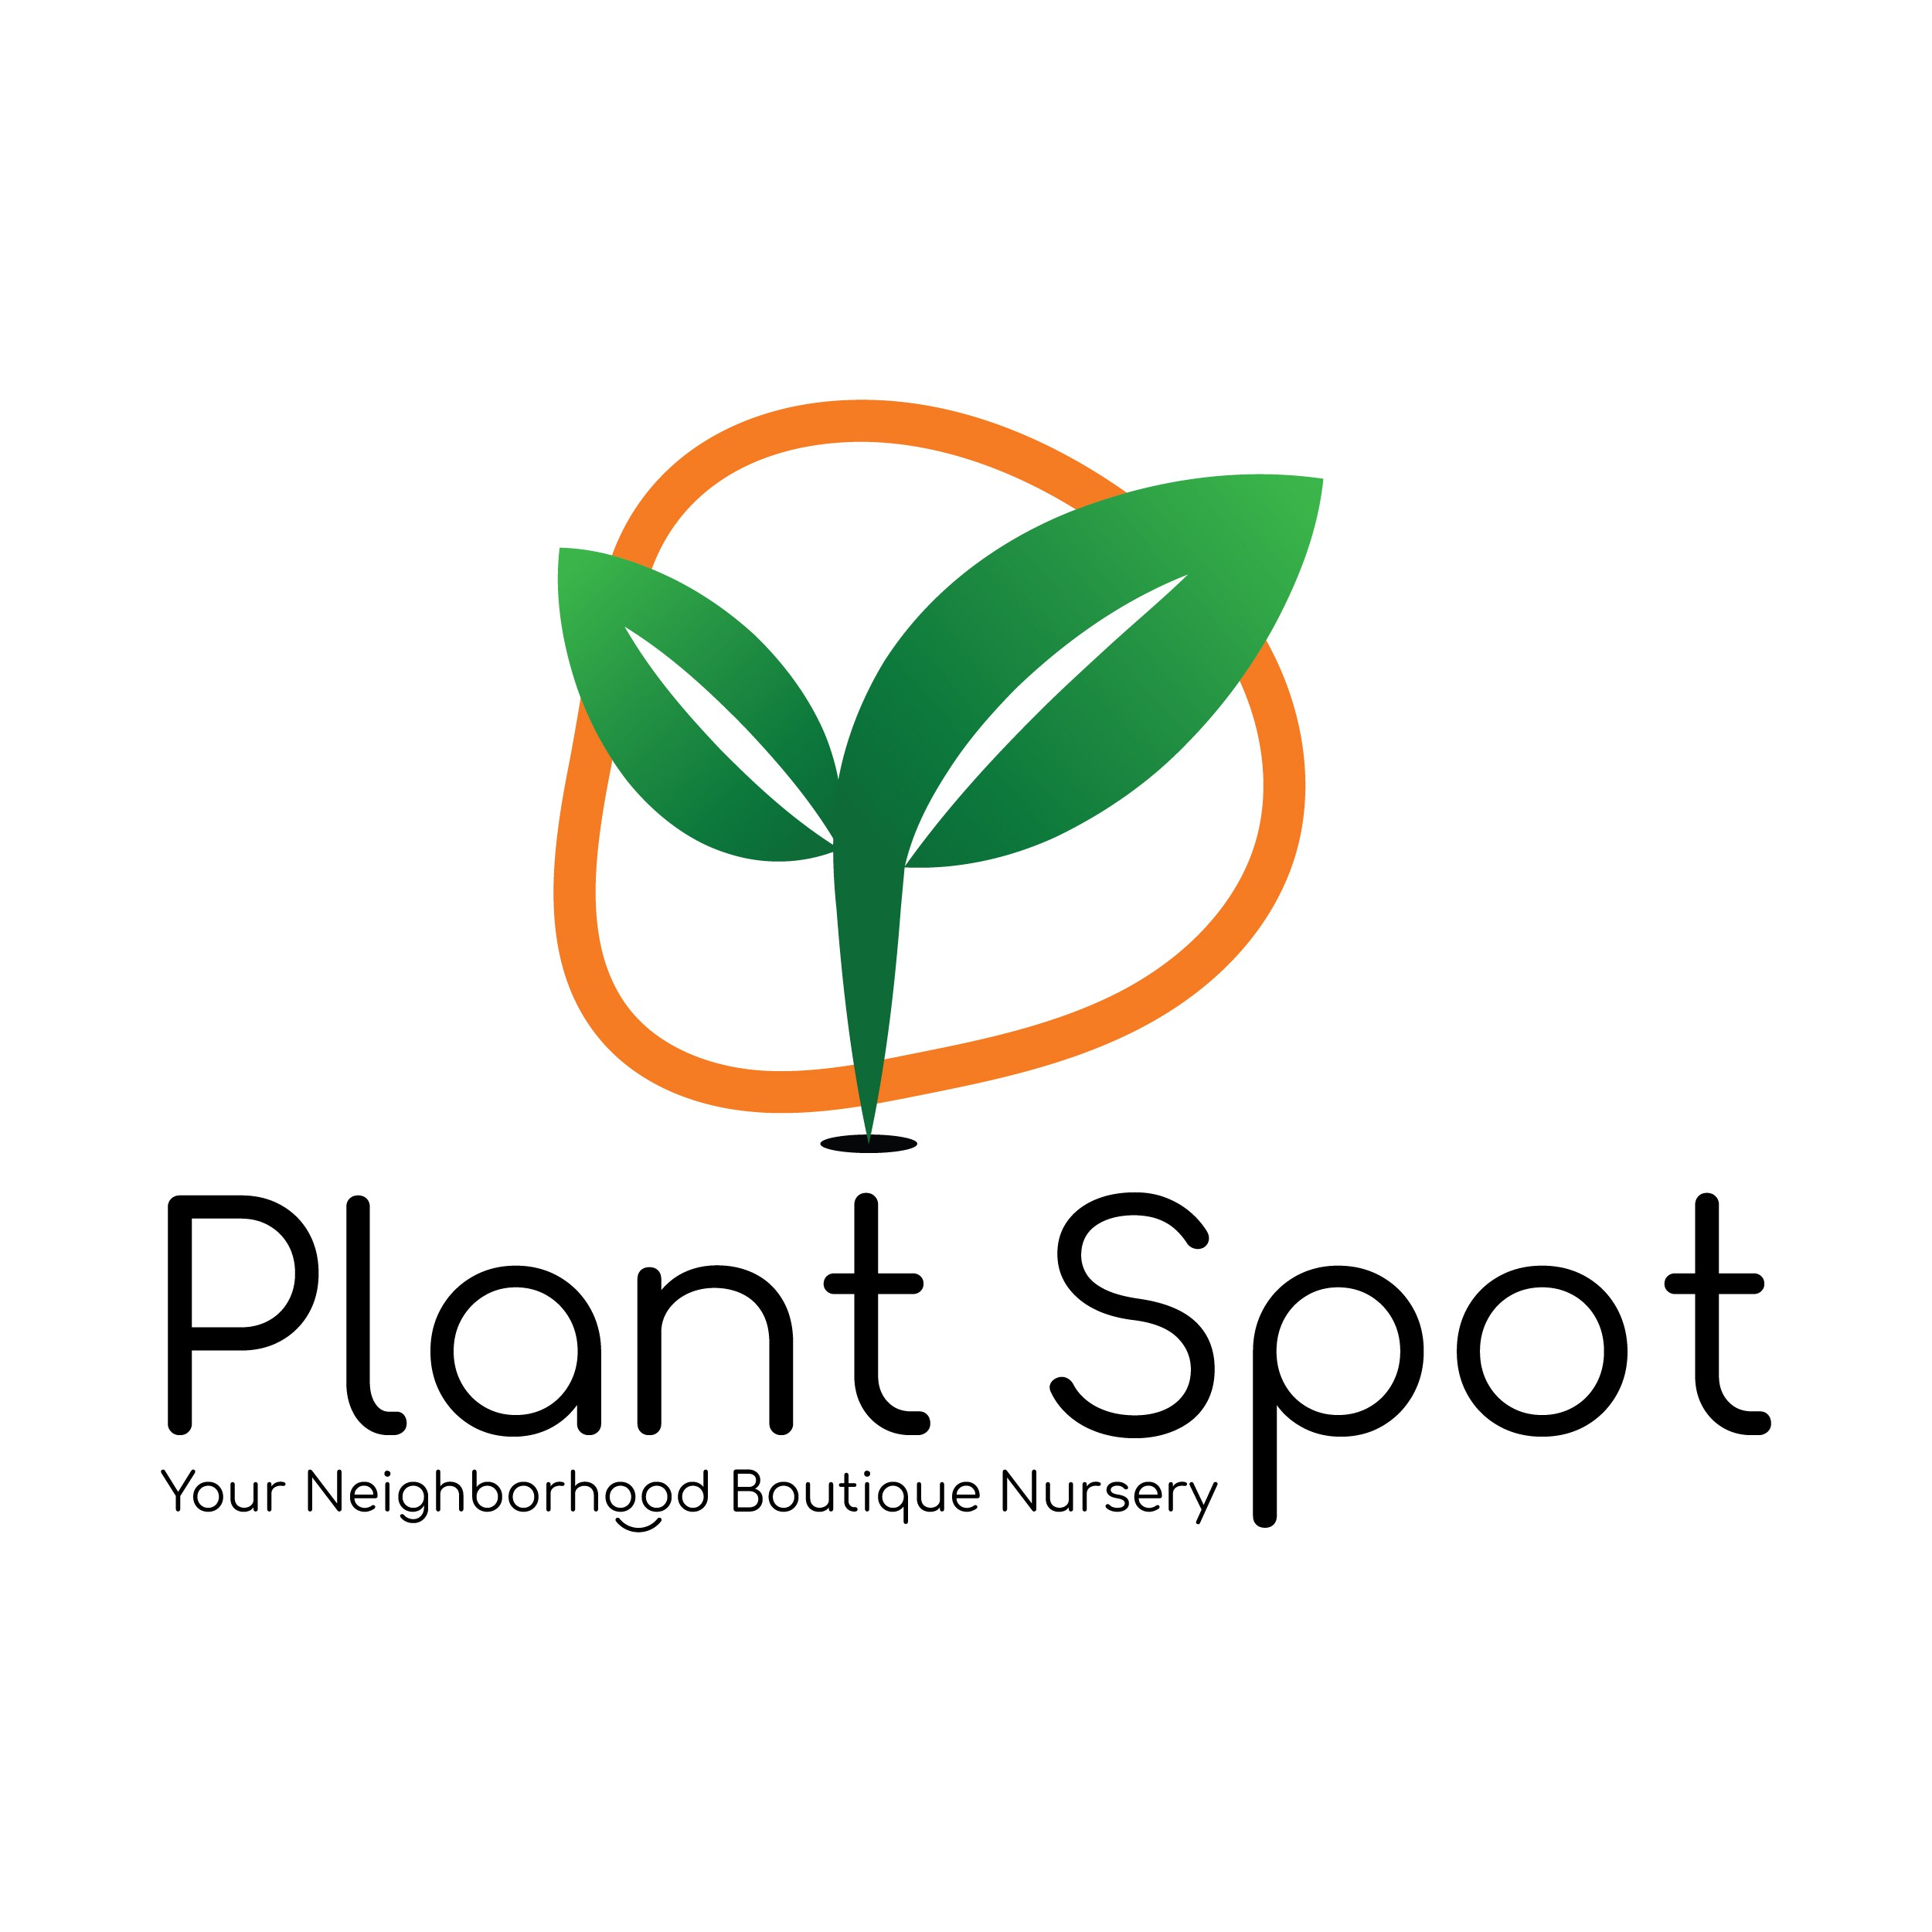 We need a new fresh and attractive logo for our high end retail garden center